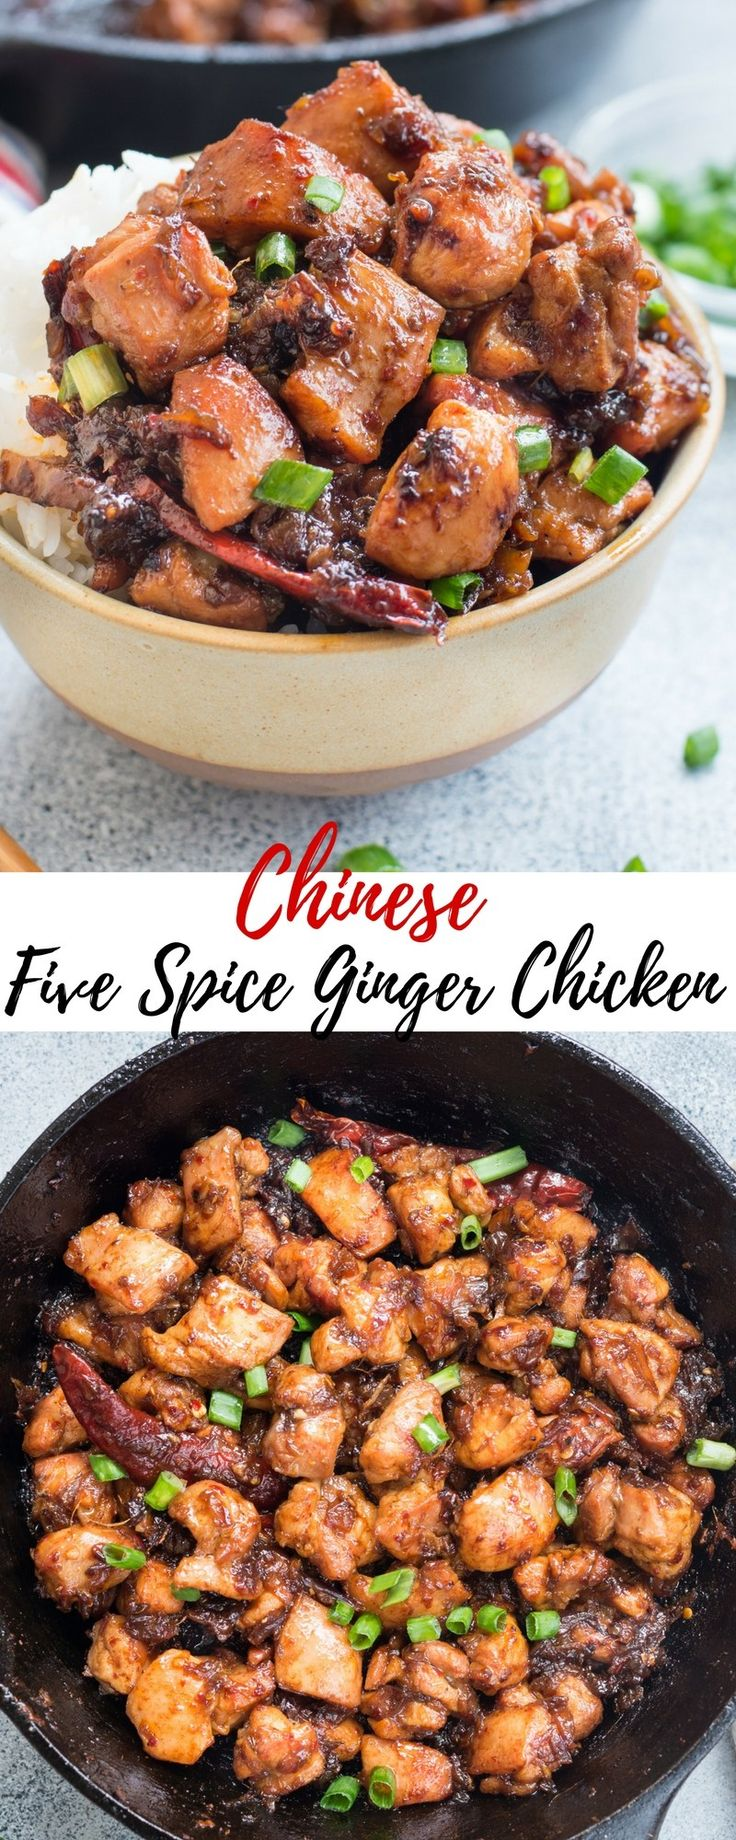 Quick Chinese Five Spice Ginger Chicken is Sweet and Spicy with perfectly caramelized sauce. Easy, quick and you only need one pan.